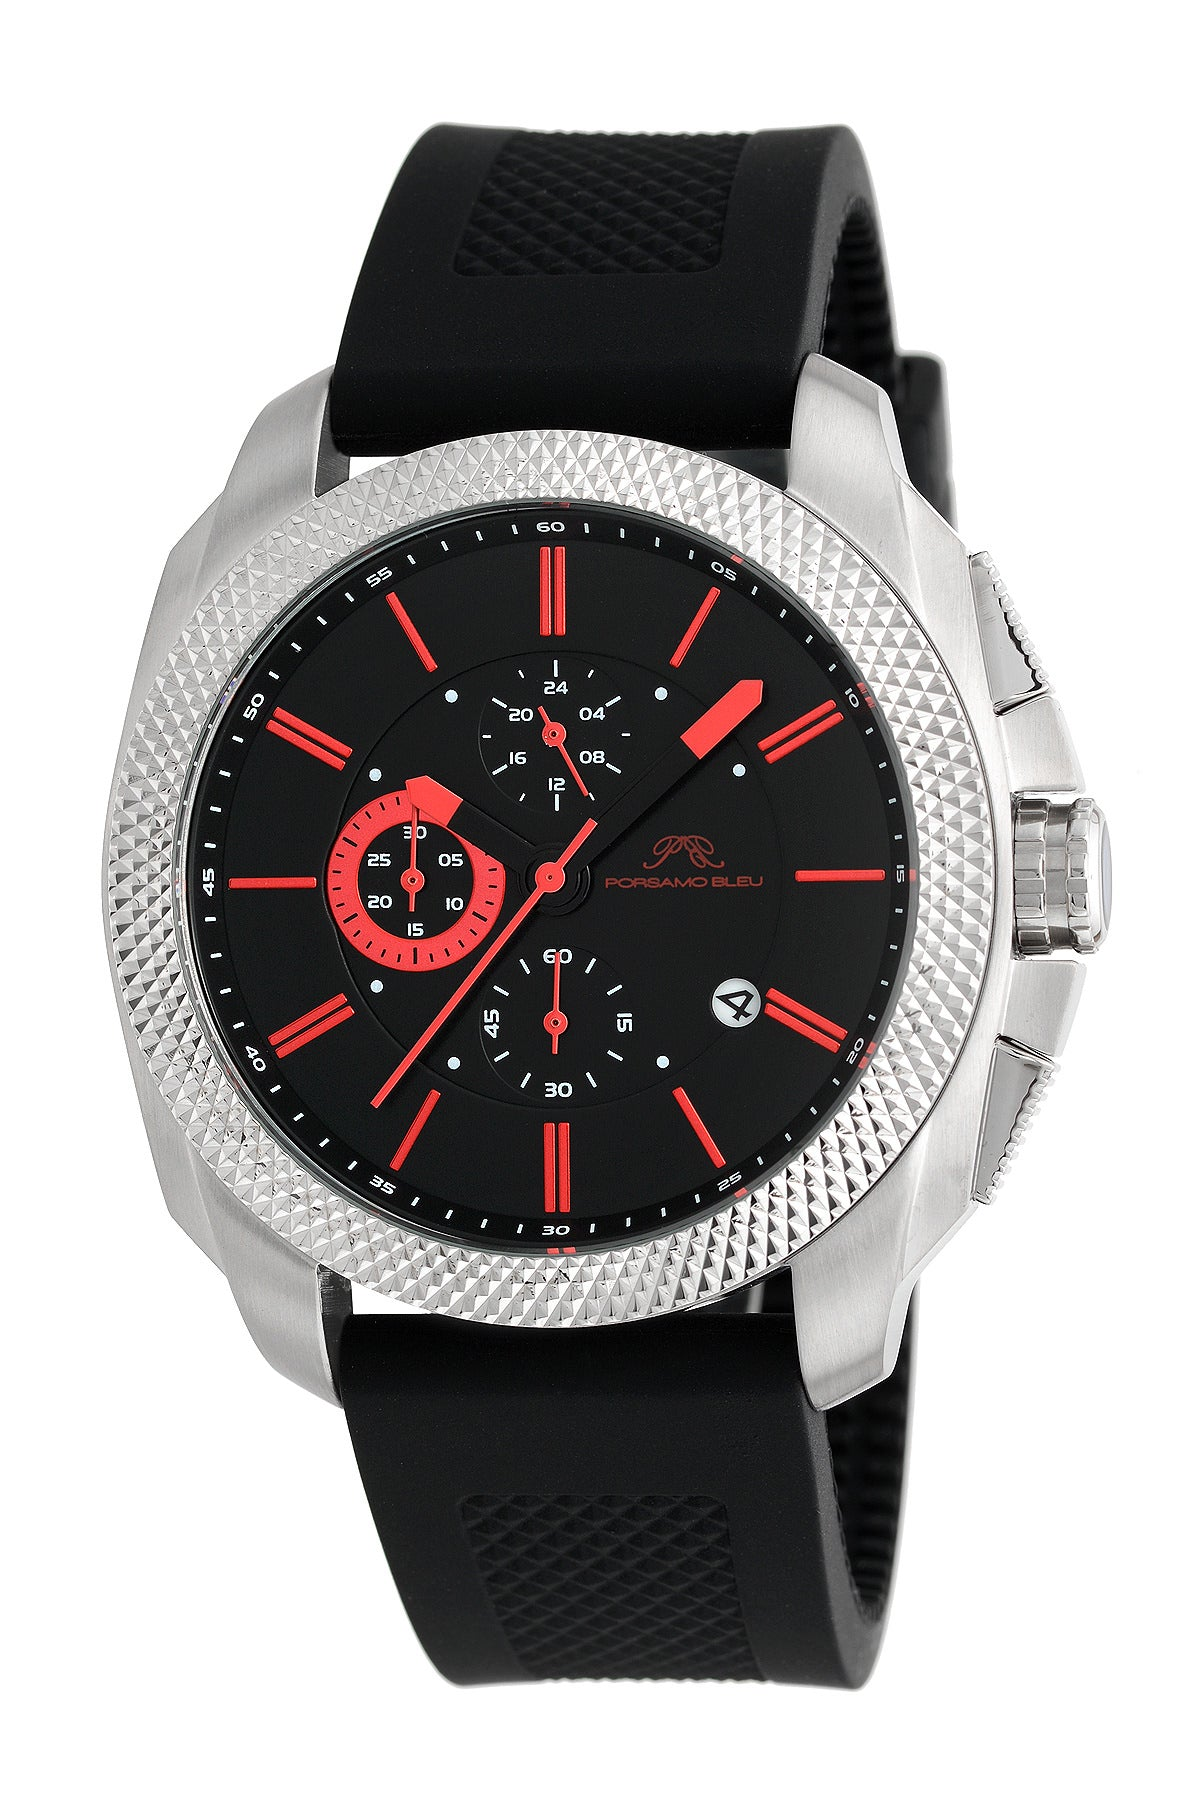 Porsamo Bleu Niccolo luxury chronograph men's watch, silicone strap, silver, black, red 332CNIR